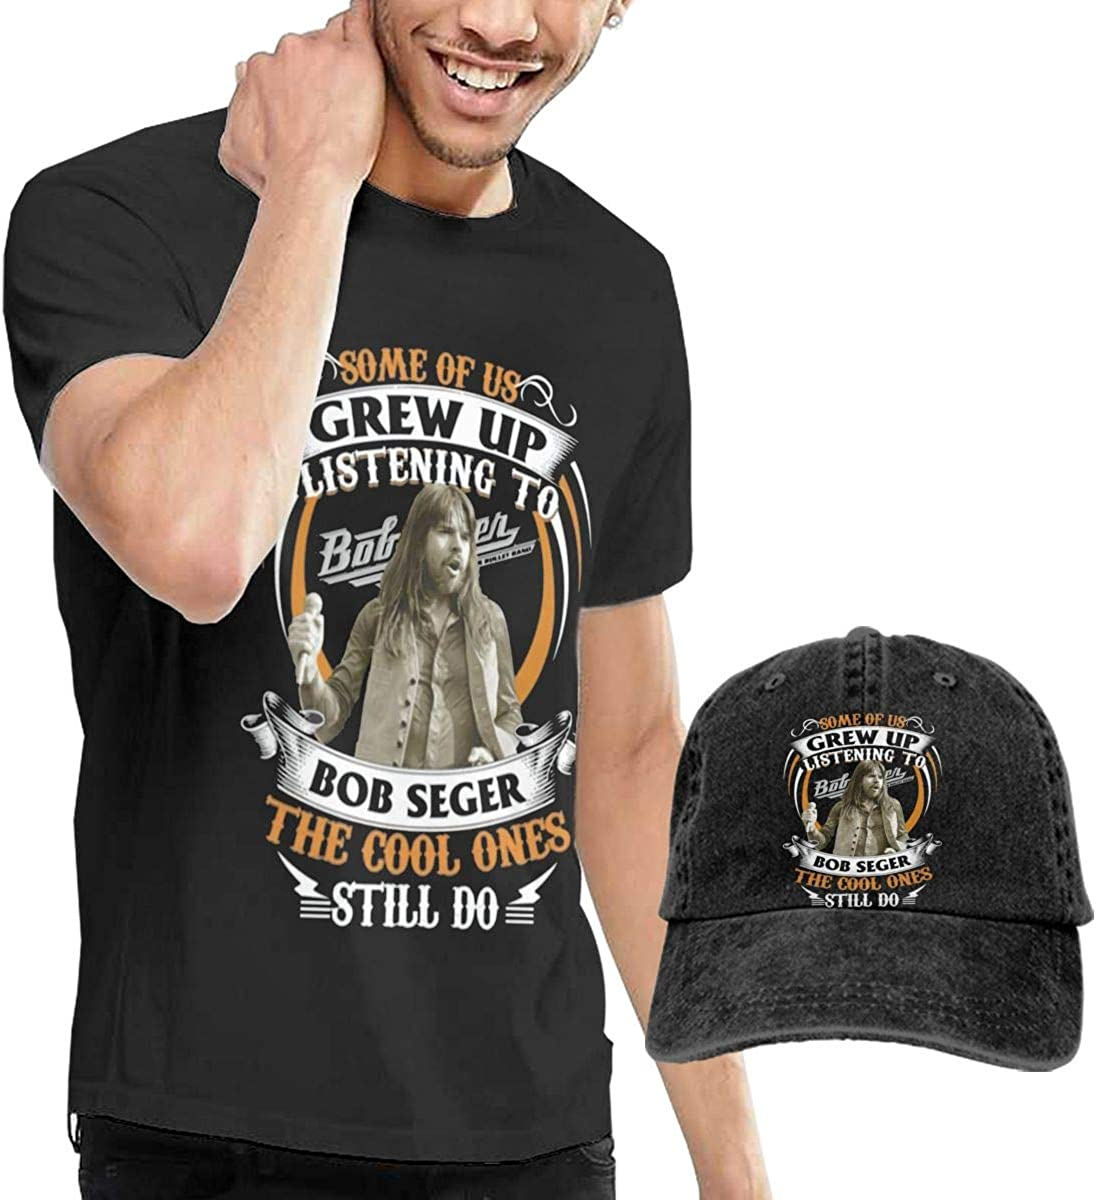 Hfusih.fhs6f789 Some of Us Grew Up Listening to Bob Seger The Cool Ones Still Do Adult Cap Adjustable Cowboys Hats Baseball Cap 3XL Black